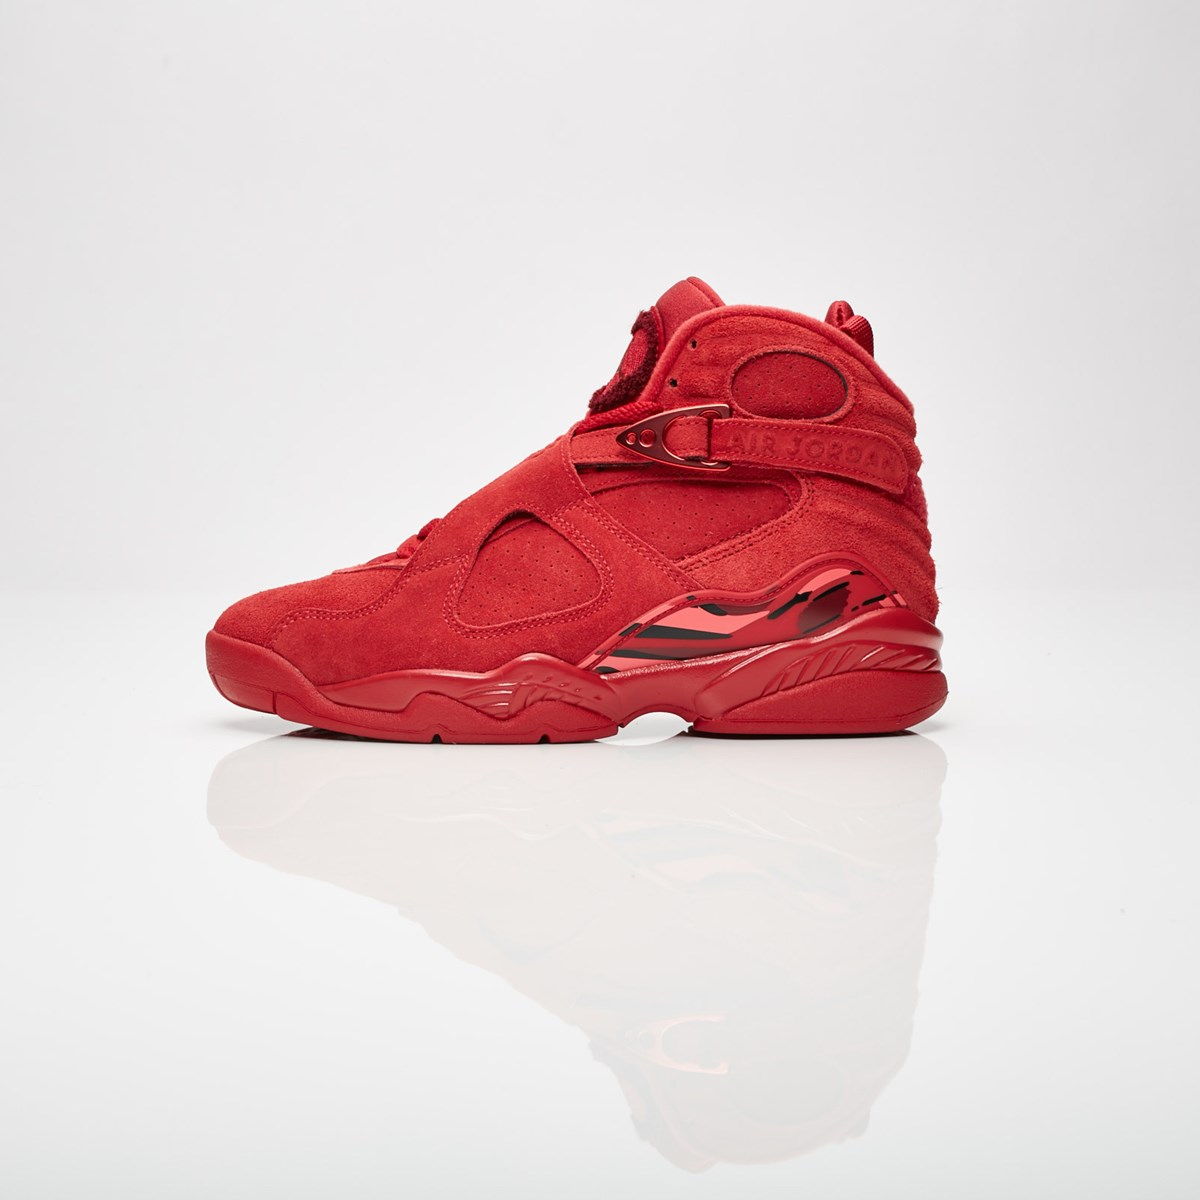 For Whole Family 037b3 823a4 Jordan 8 Valentines Day Red Womens